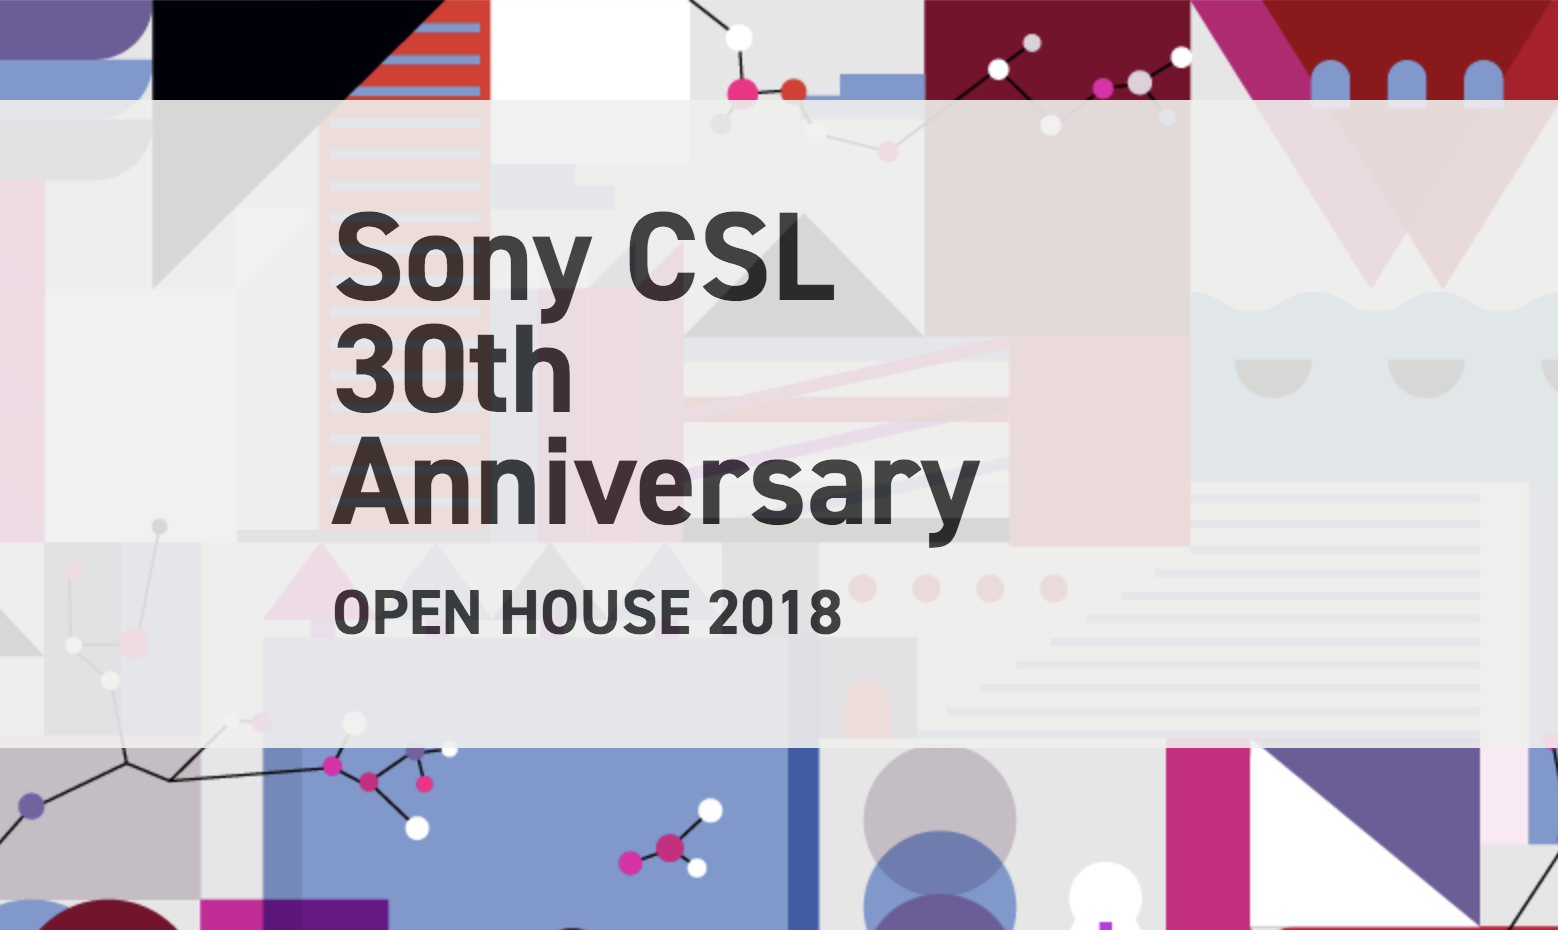 sony_csl_open_house_2018